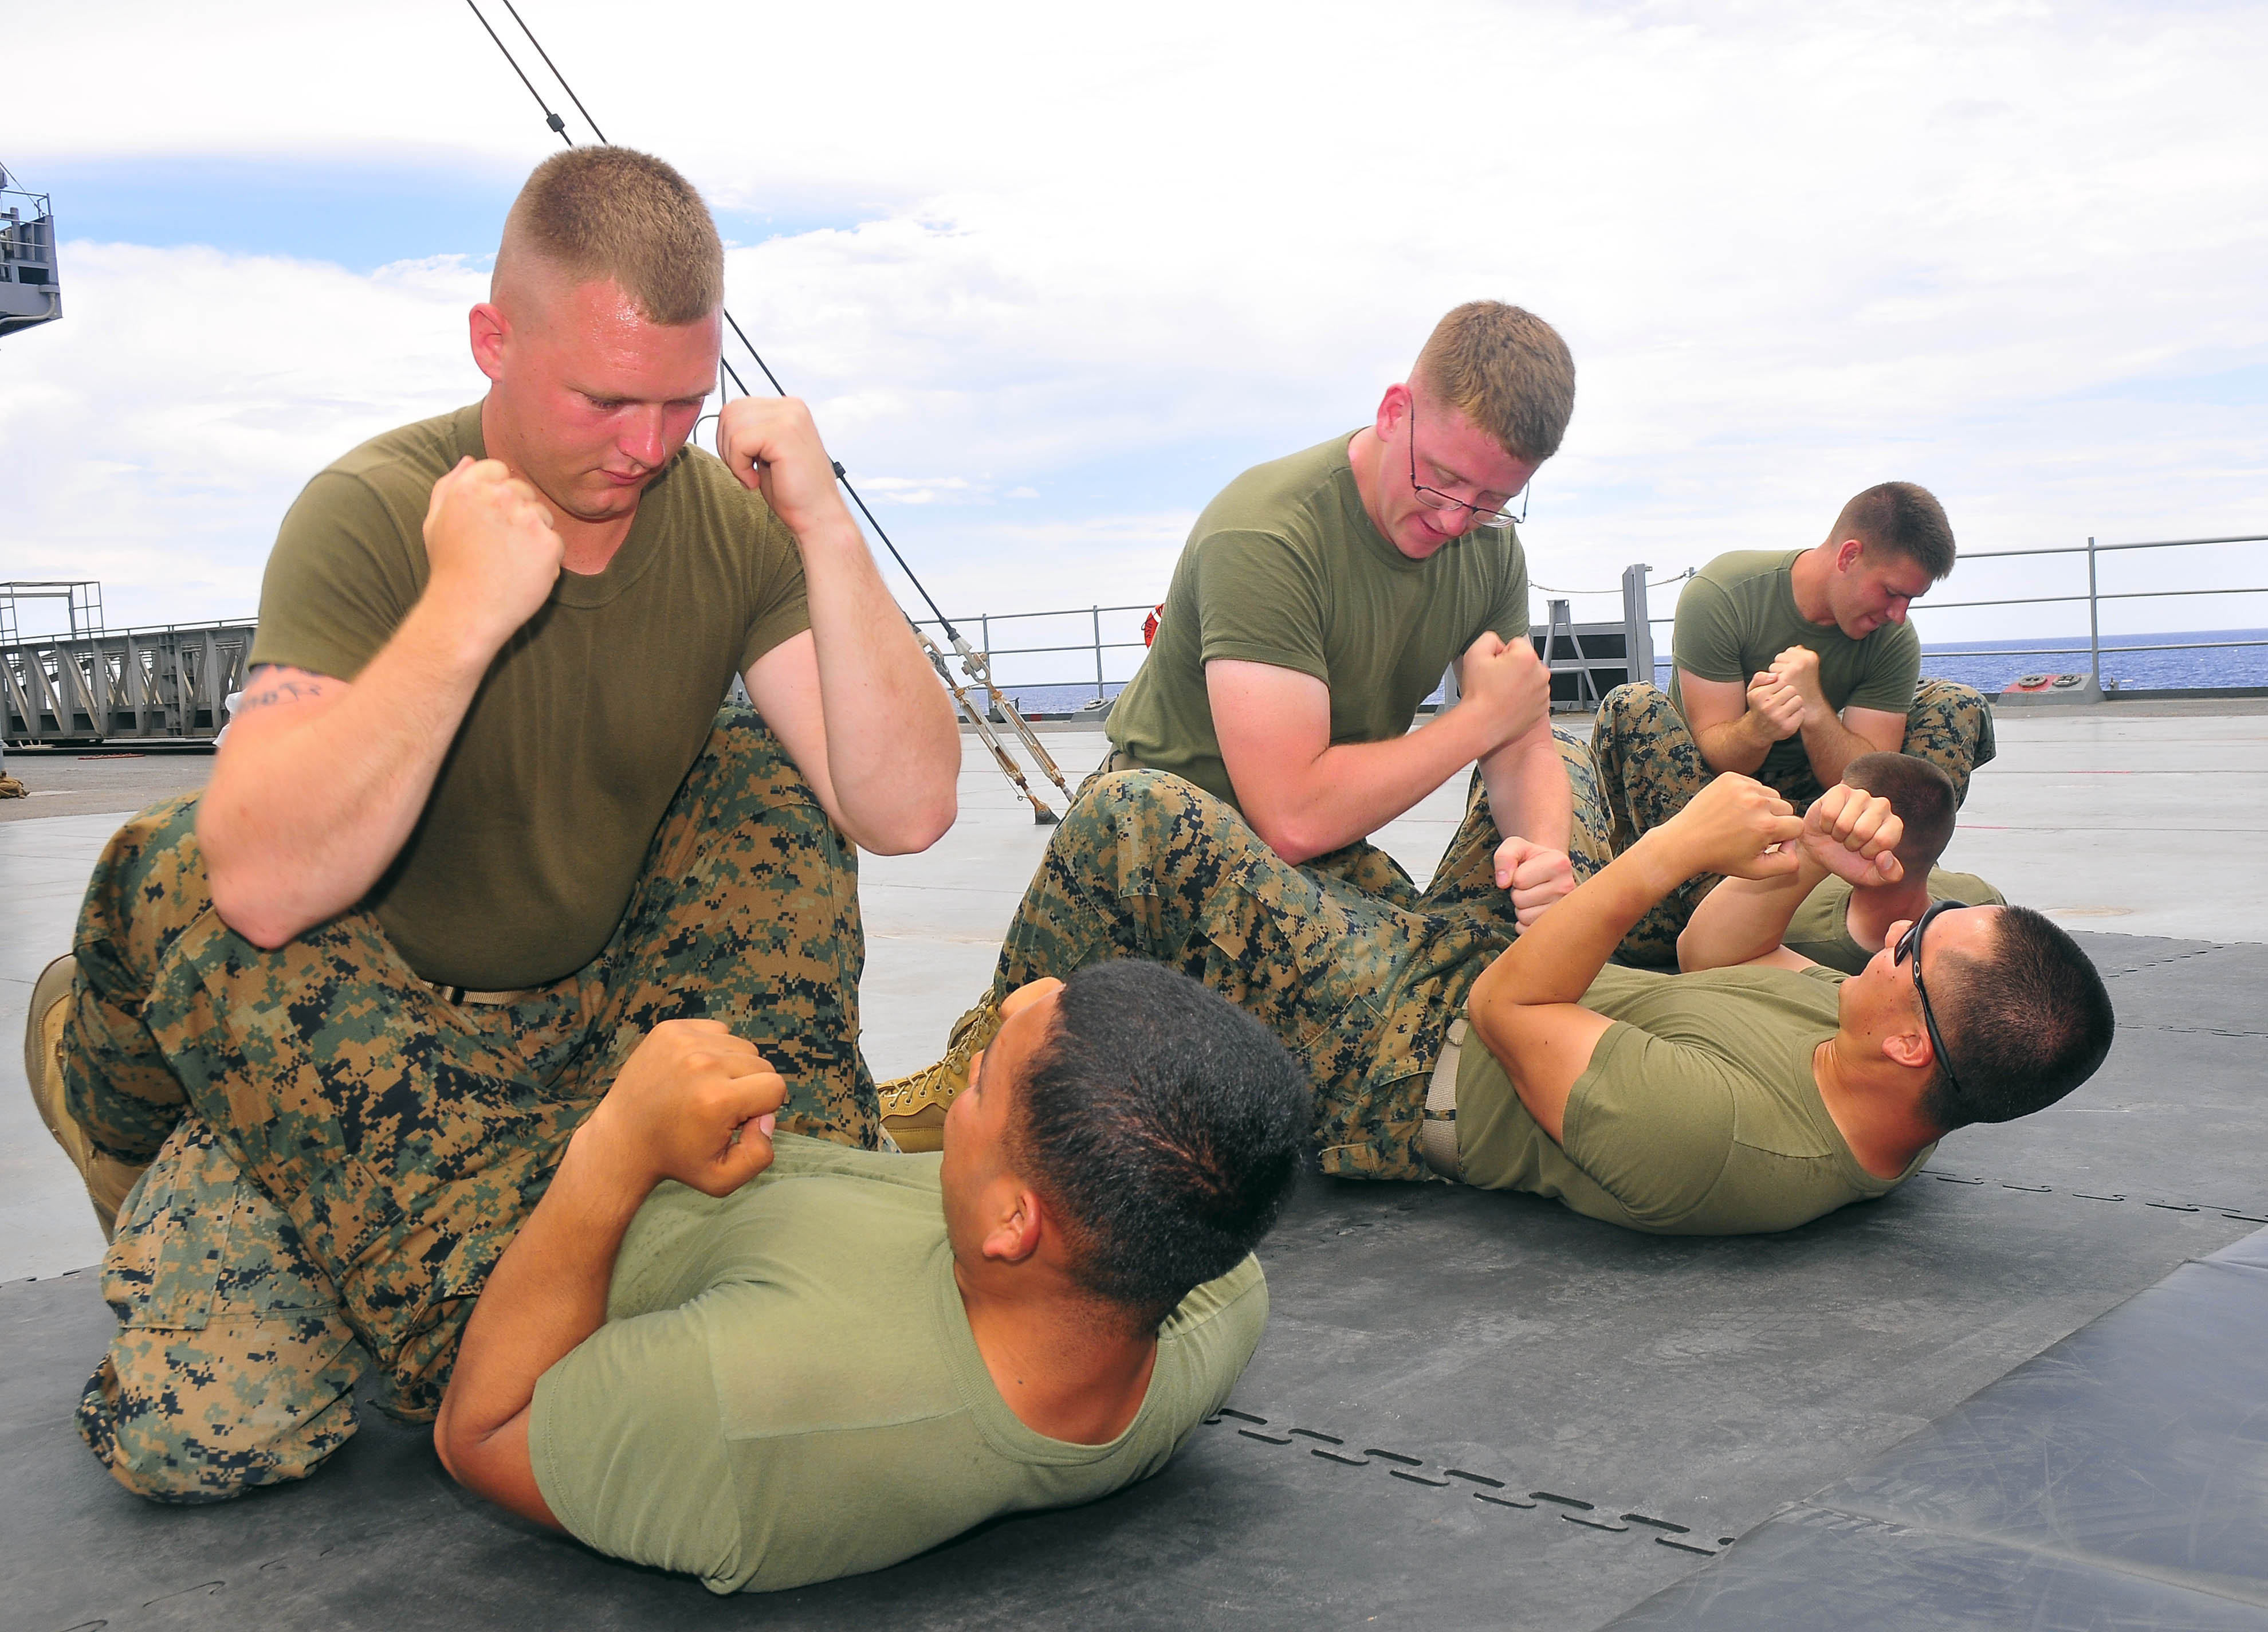 http://upload.wikimedia.org/wikipedia/commons/e/ed/130528-N-QD718-085_PHILIPPINE_SEA_(May_28,_2013)-_Marines_assigned_to_Fleet_Anti-terrorism_Security_Team_Pacific_(FASTPAC),_perform_mixed_martial_arts_training_techniques_aboard_U.S._7th_Fleet_130528-N-QD718-085.jpg